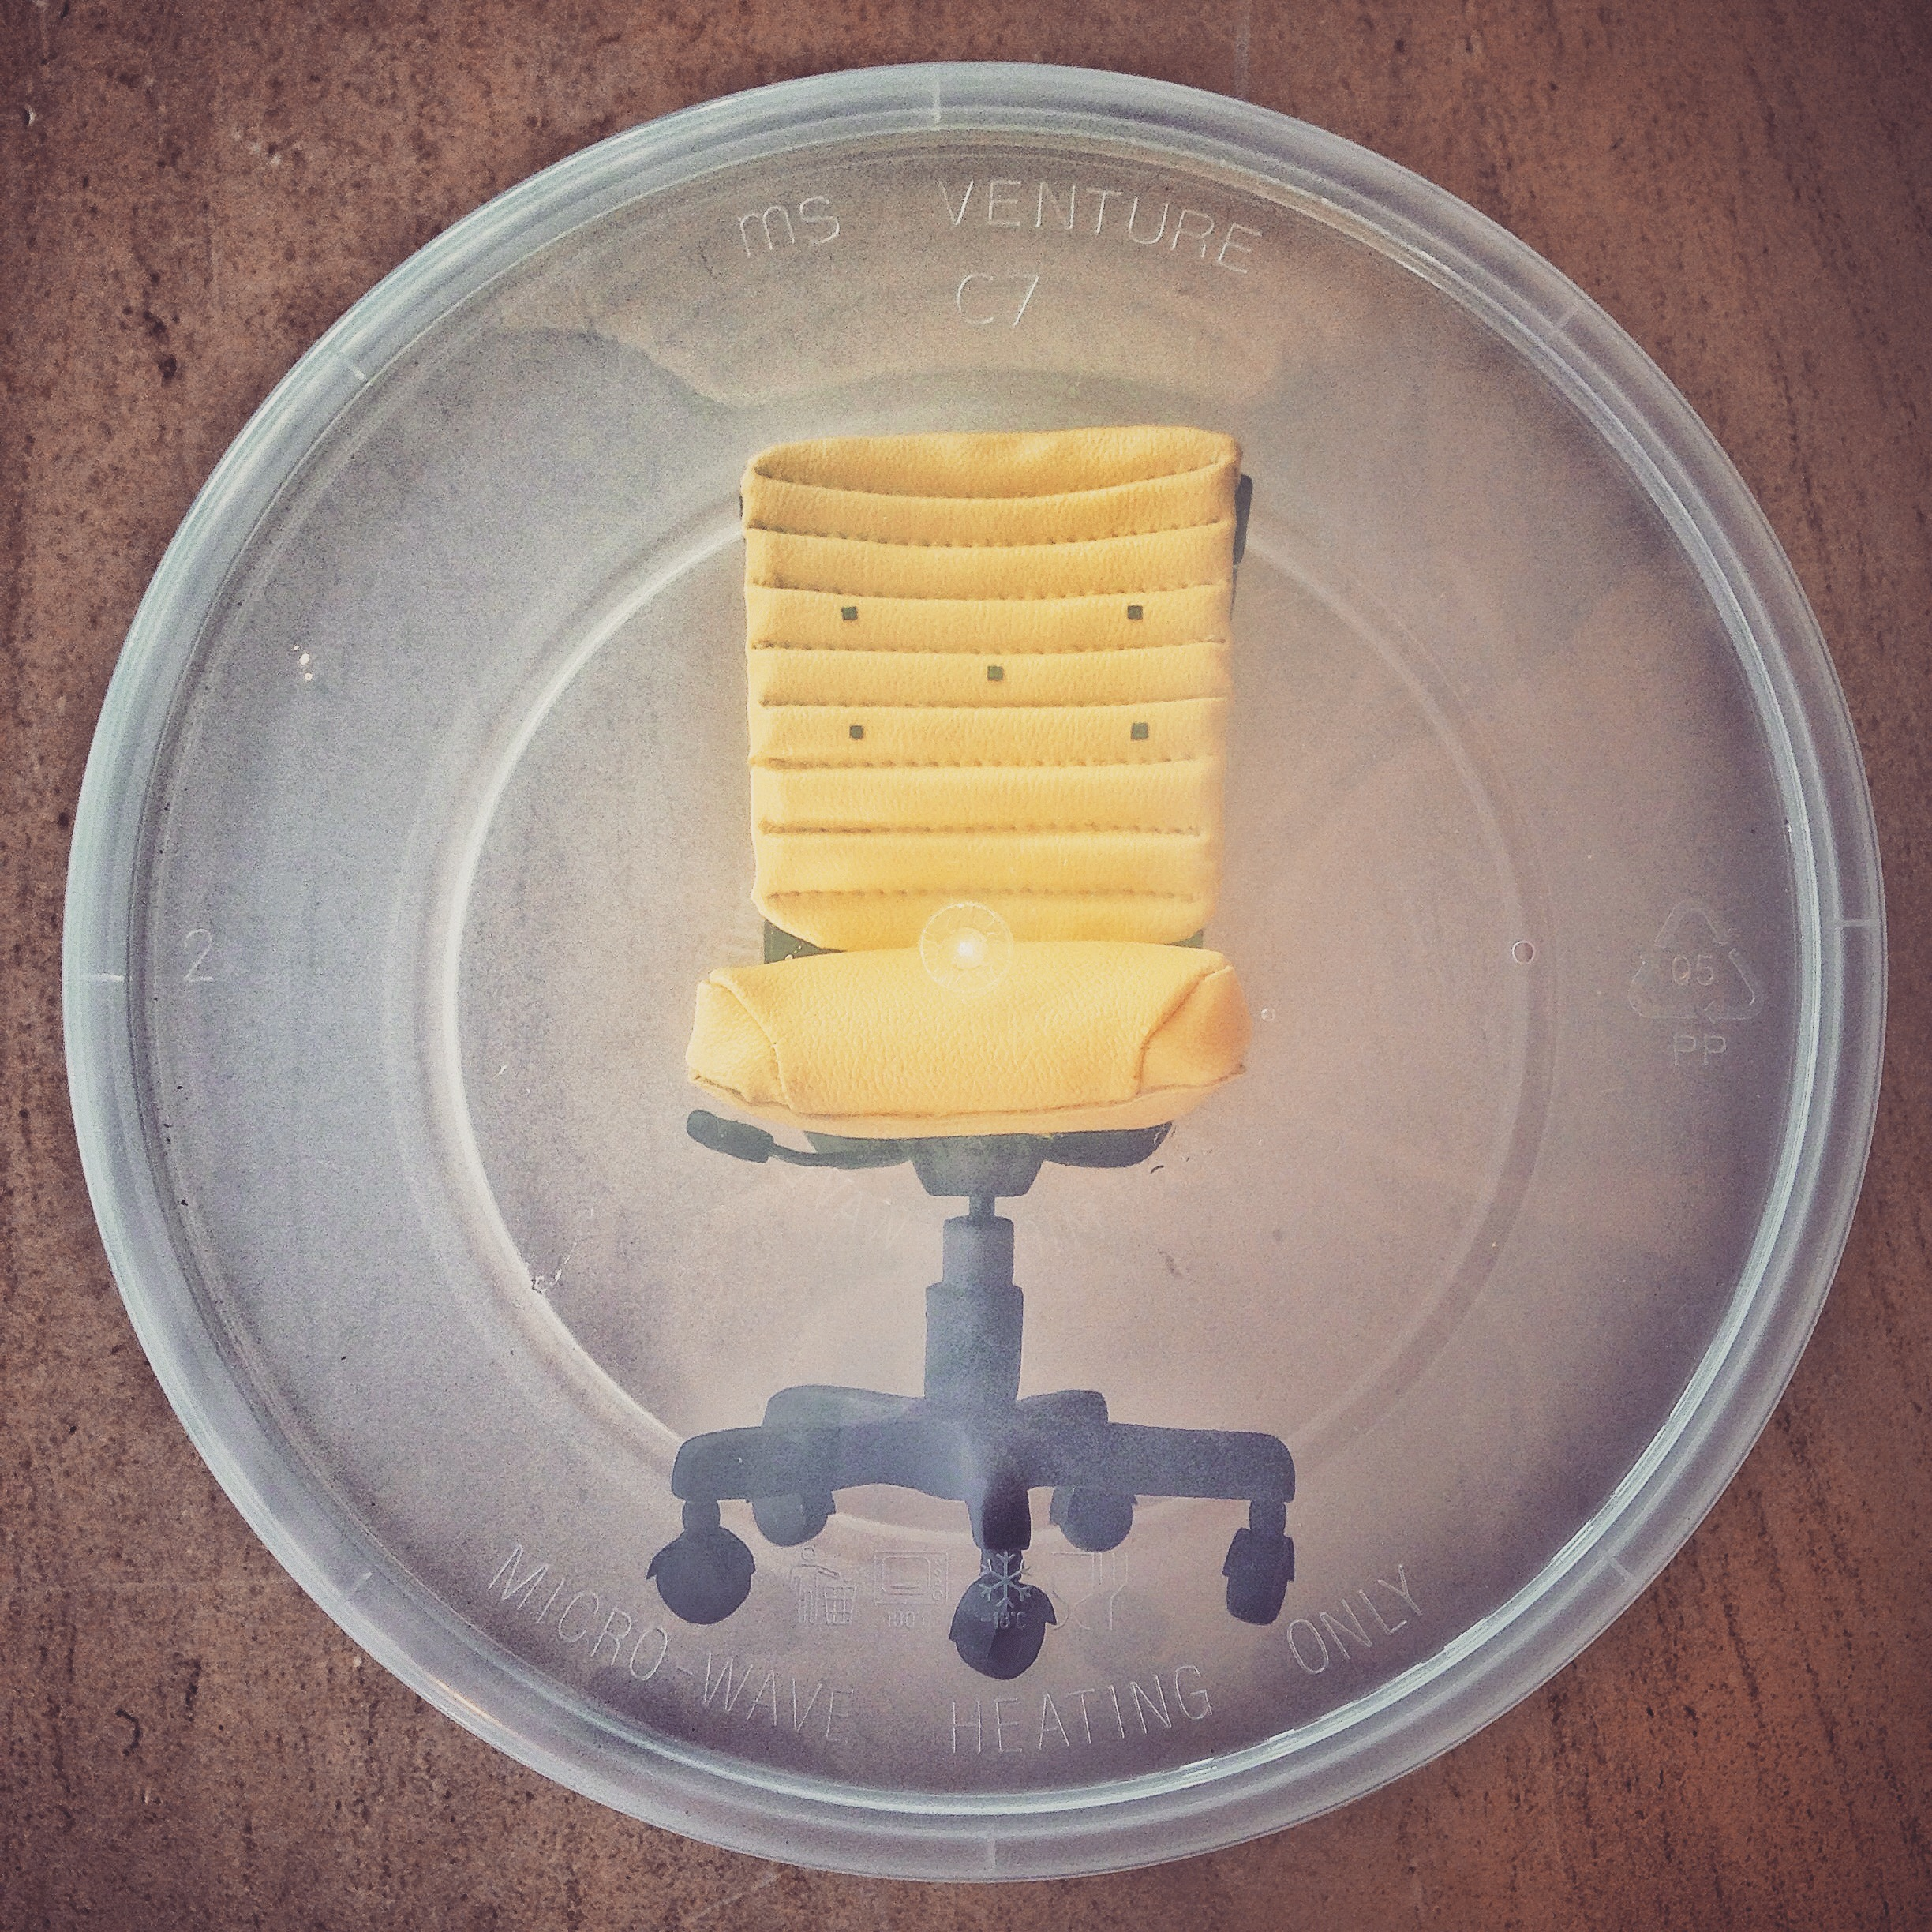 A Chair in a Disposable Box